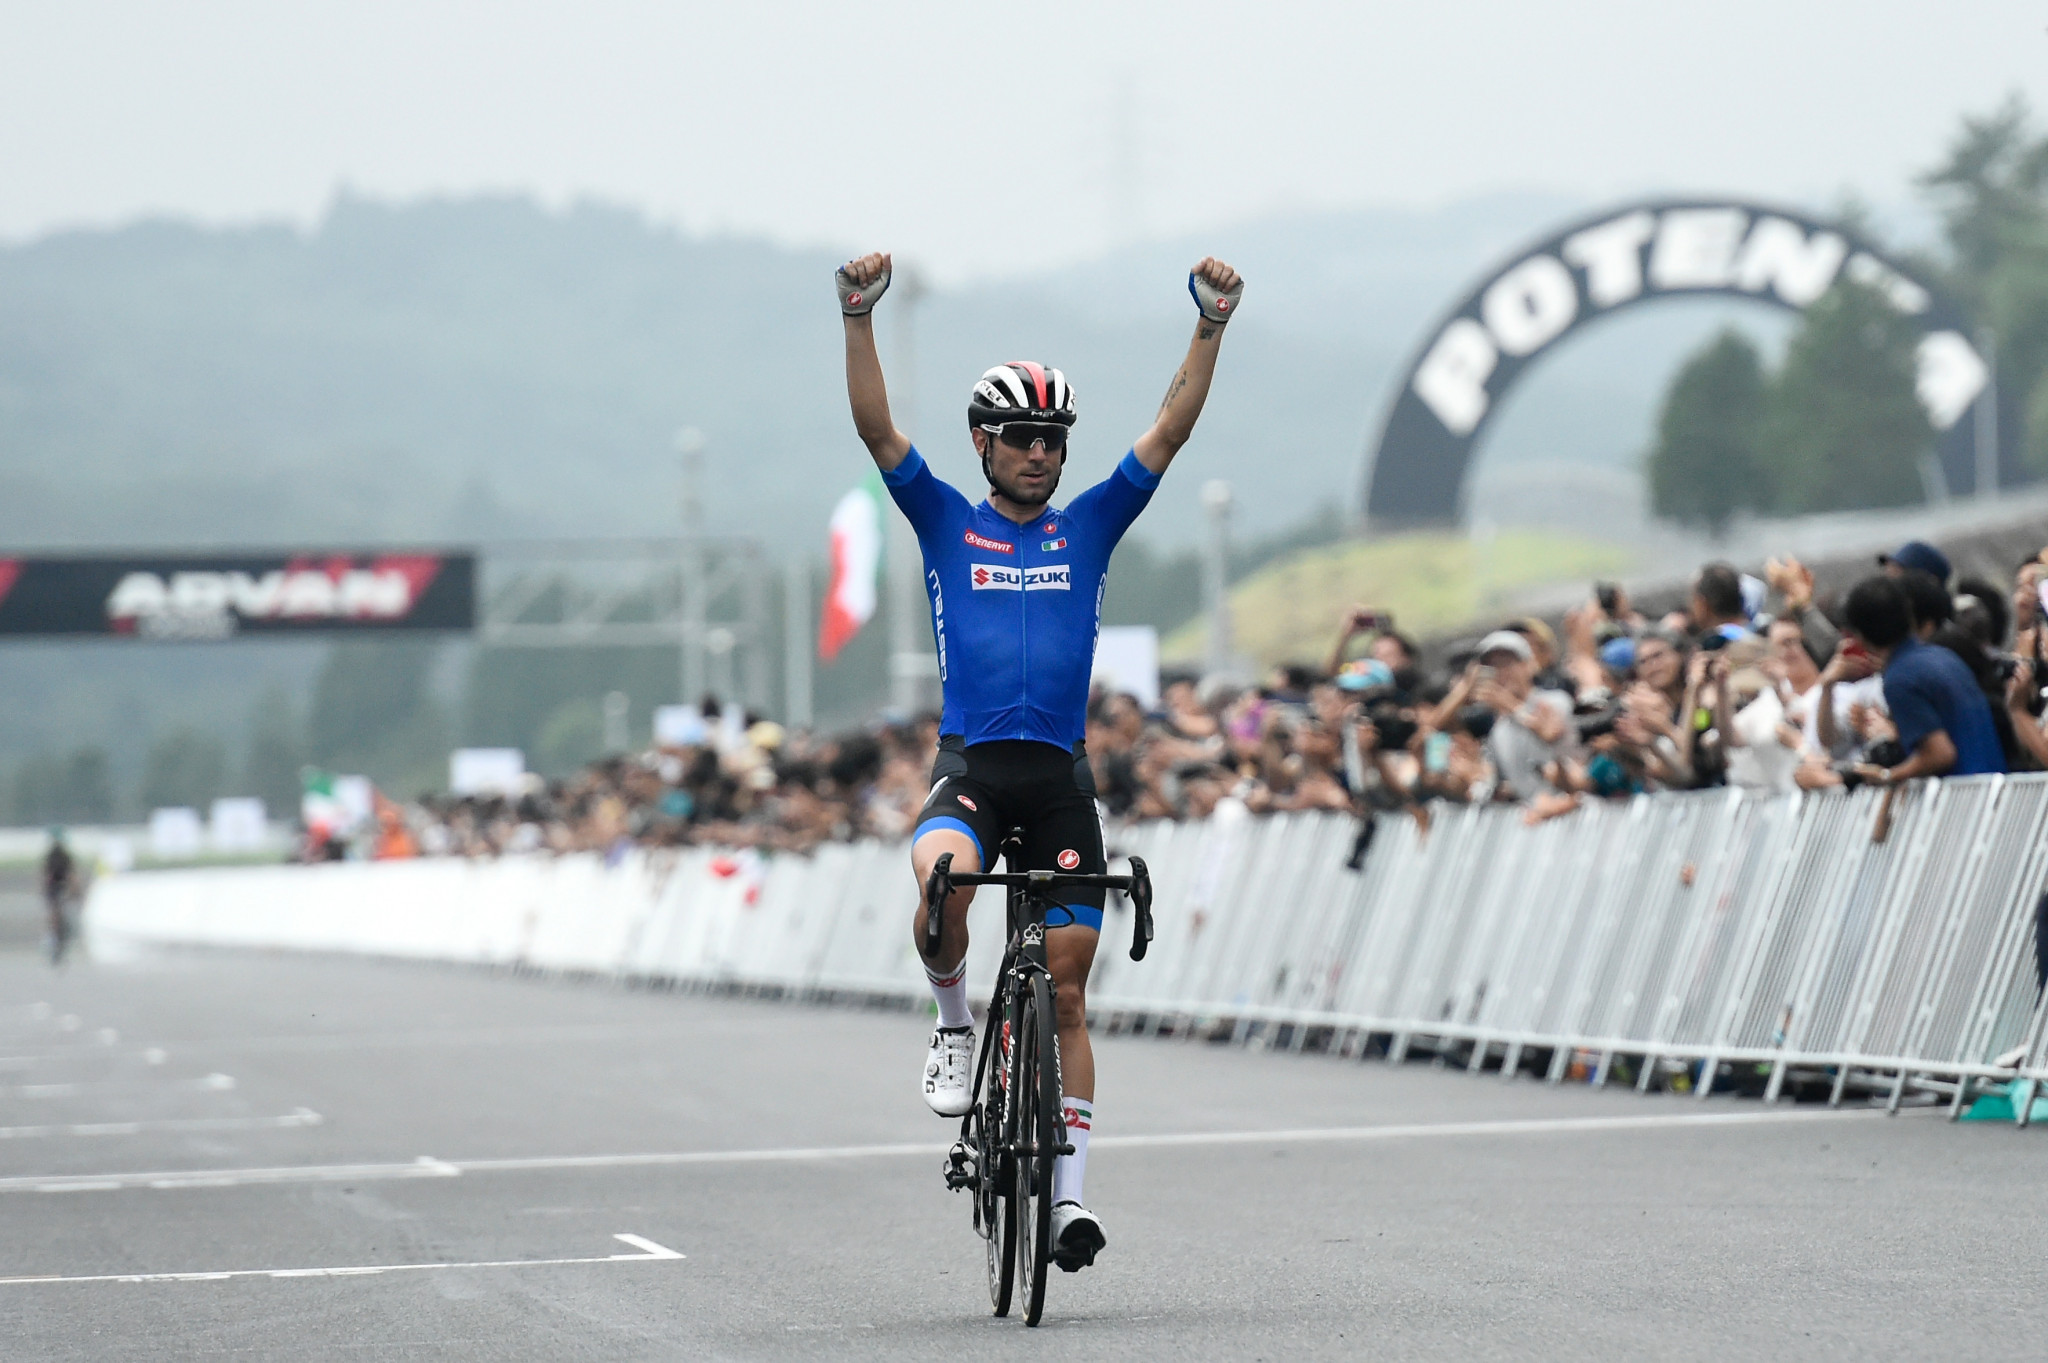 Italy's Diego Ulissi celebrates winning the test event ©Getty Images